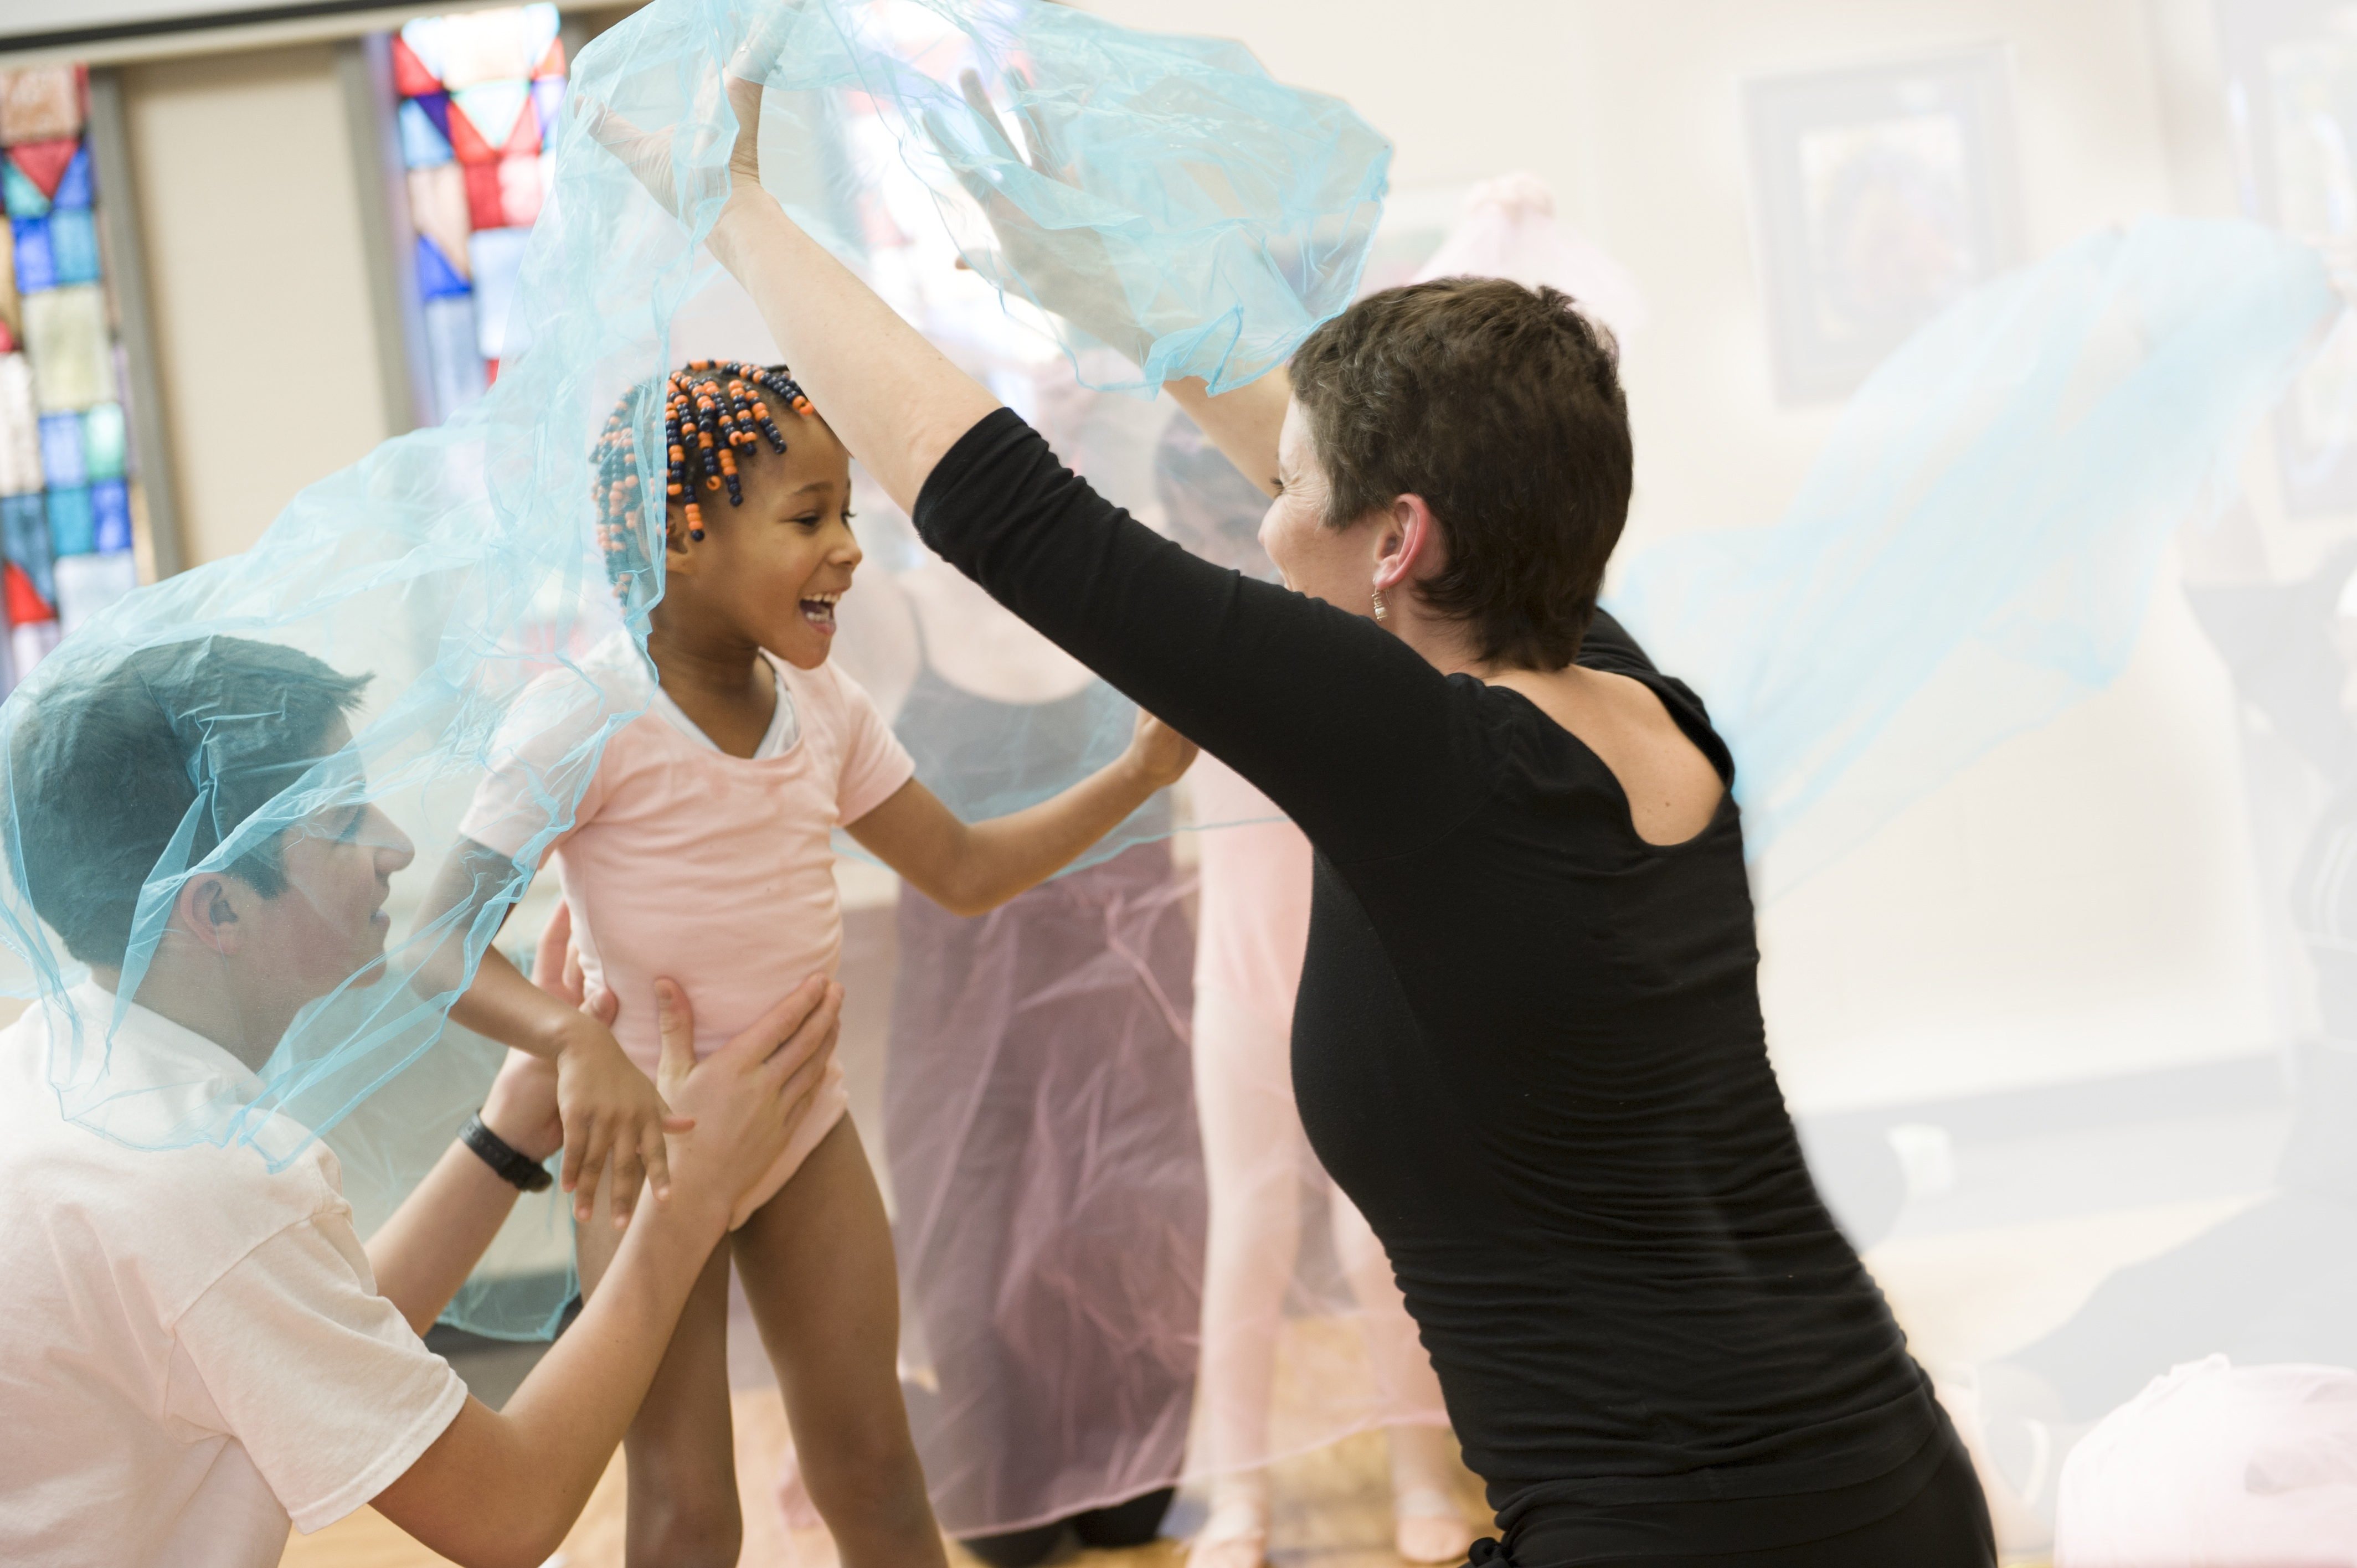 children cerebral palsy improve physical abilities through upstate patient miracle thompson 5 dances jowonio occupational therapist lisa neville and